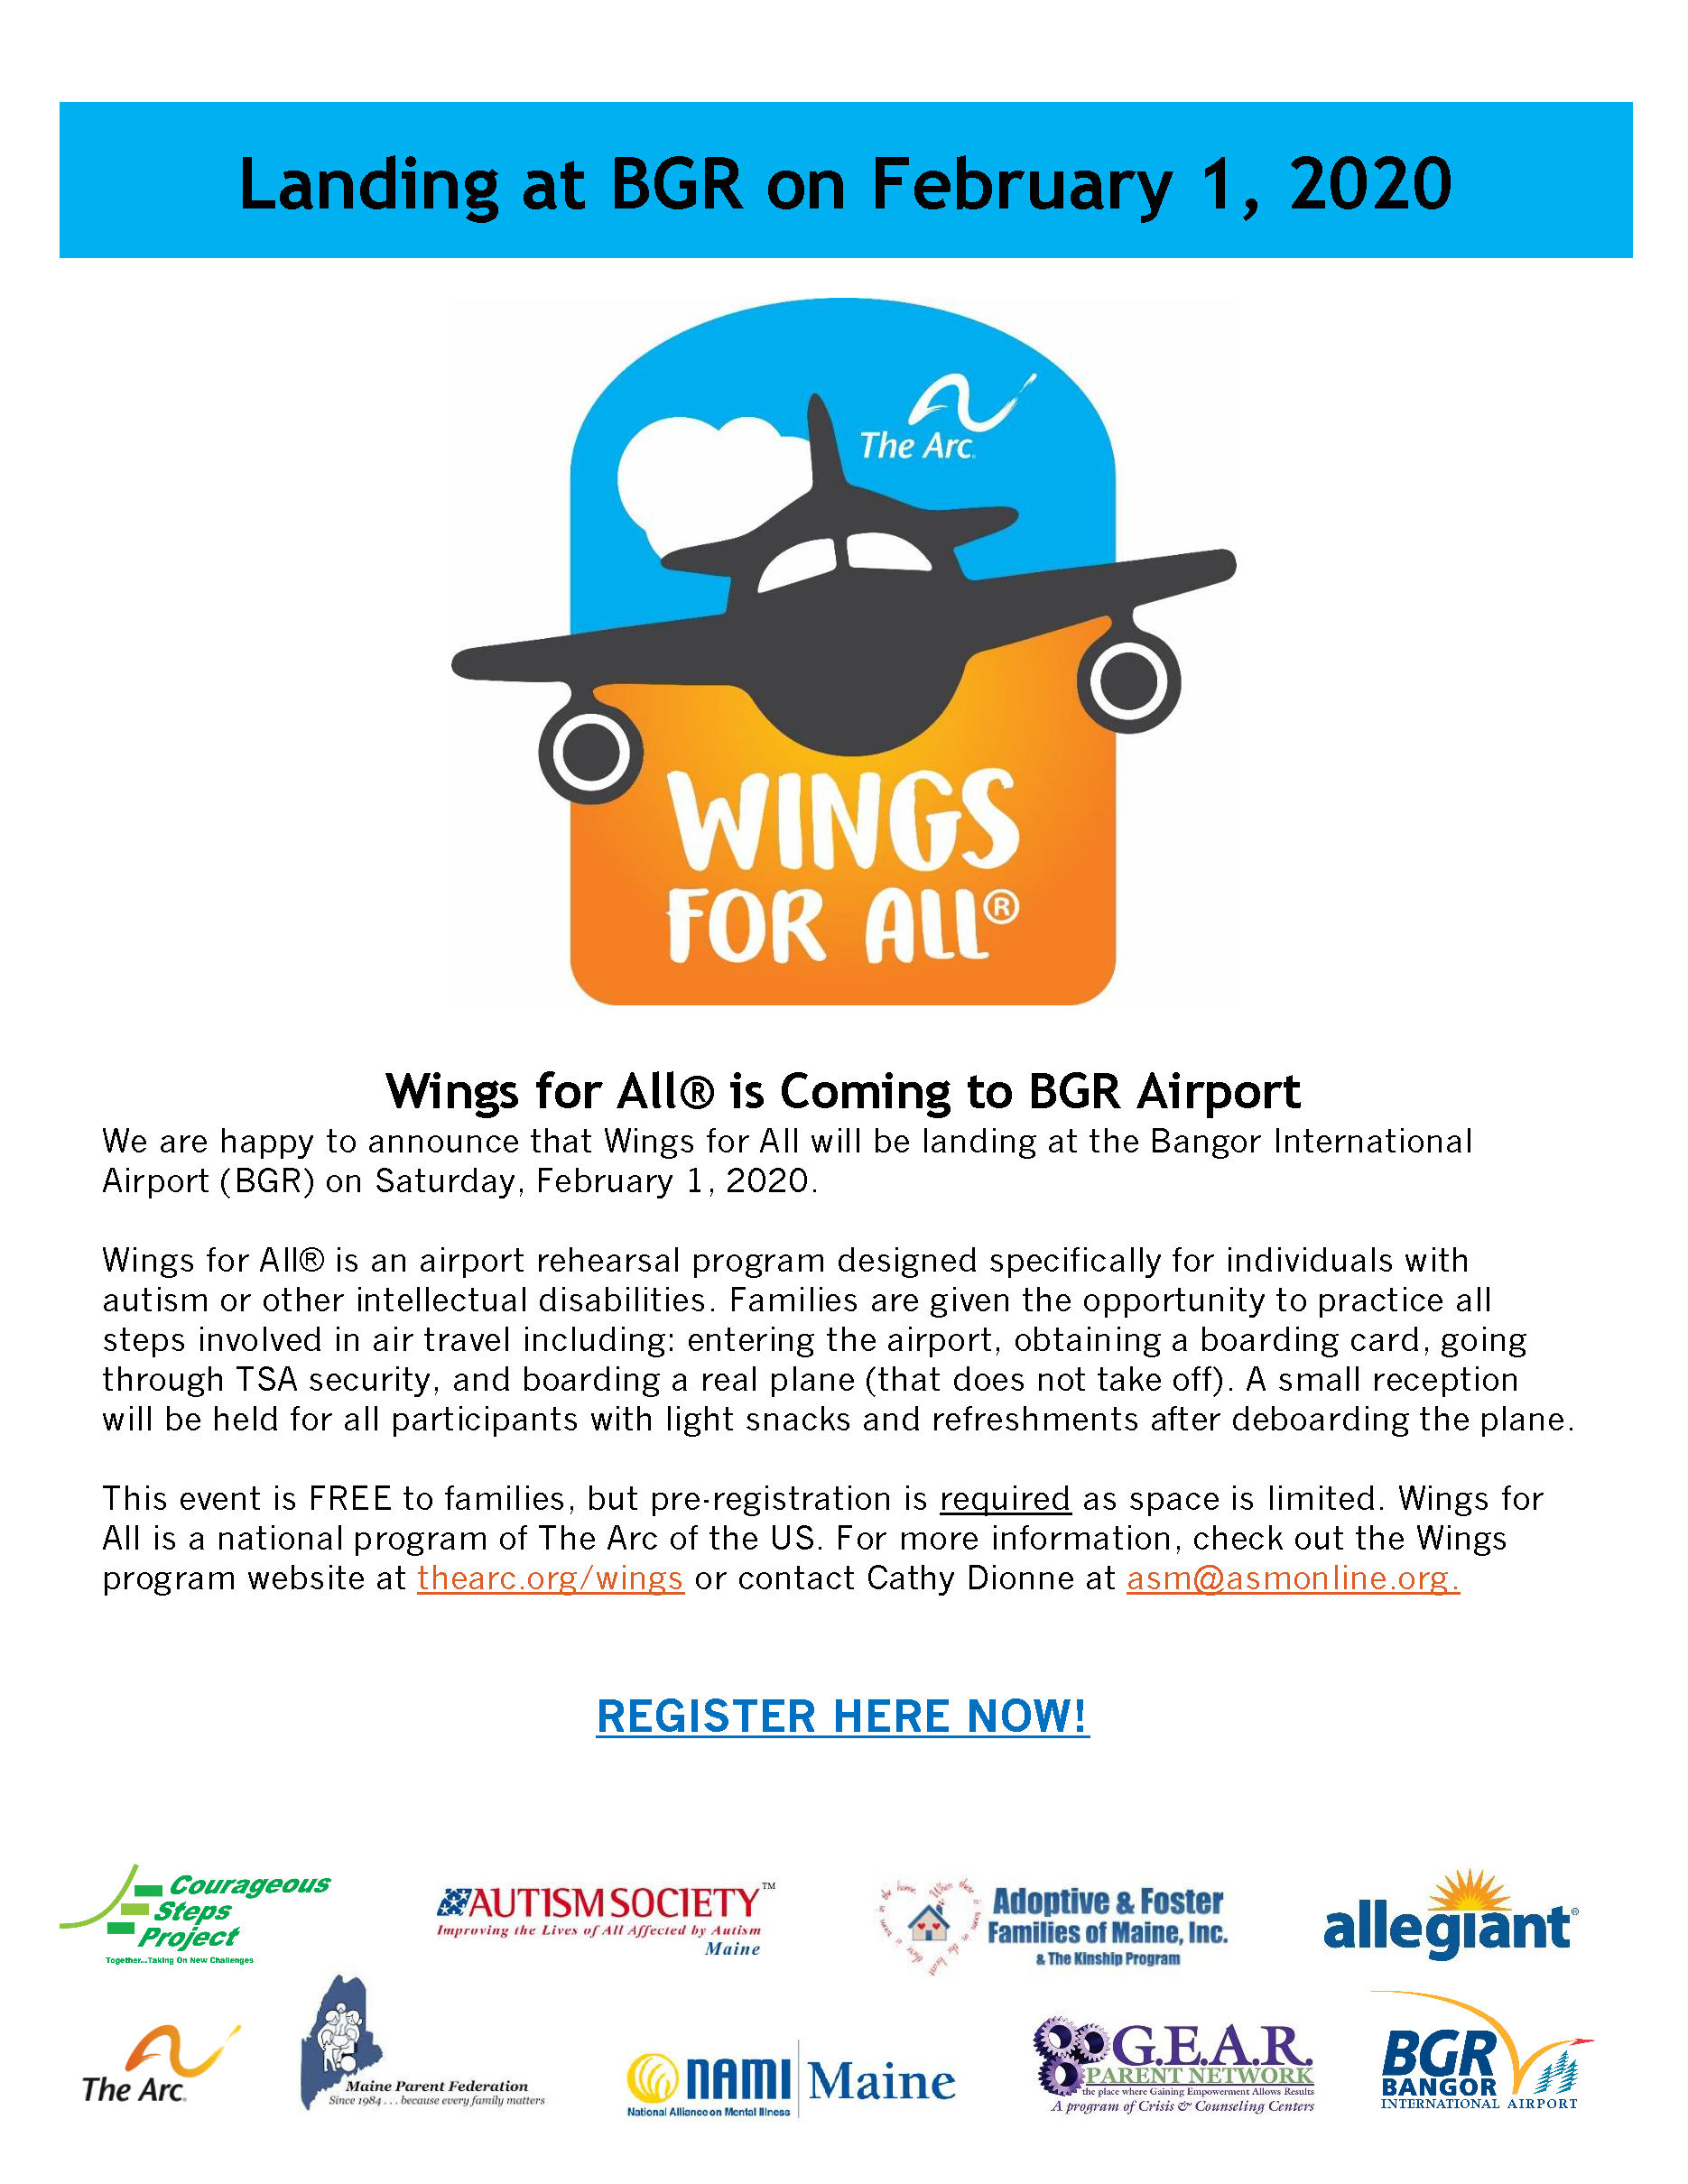 Wings for All Bangor Airport Poster - see below for poster text